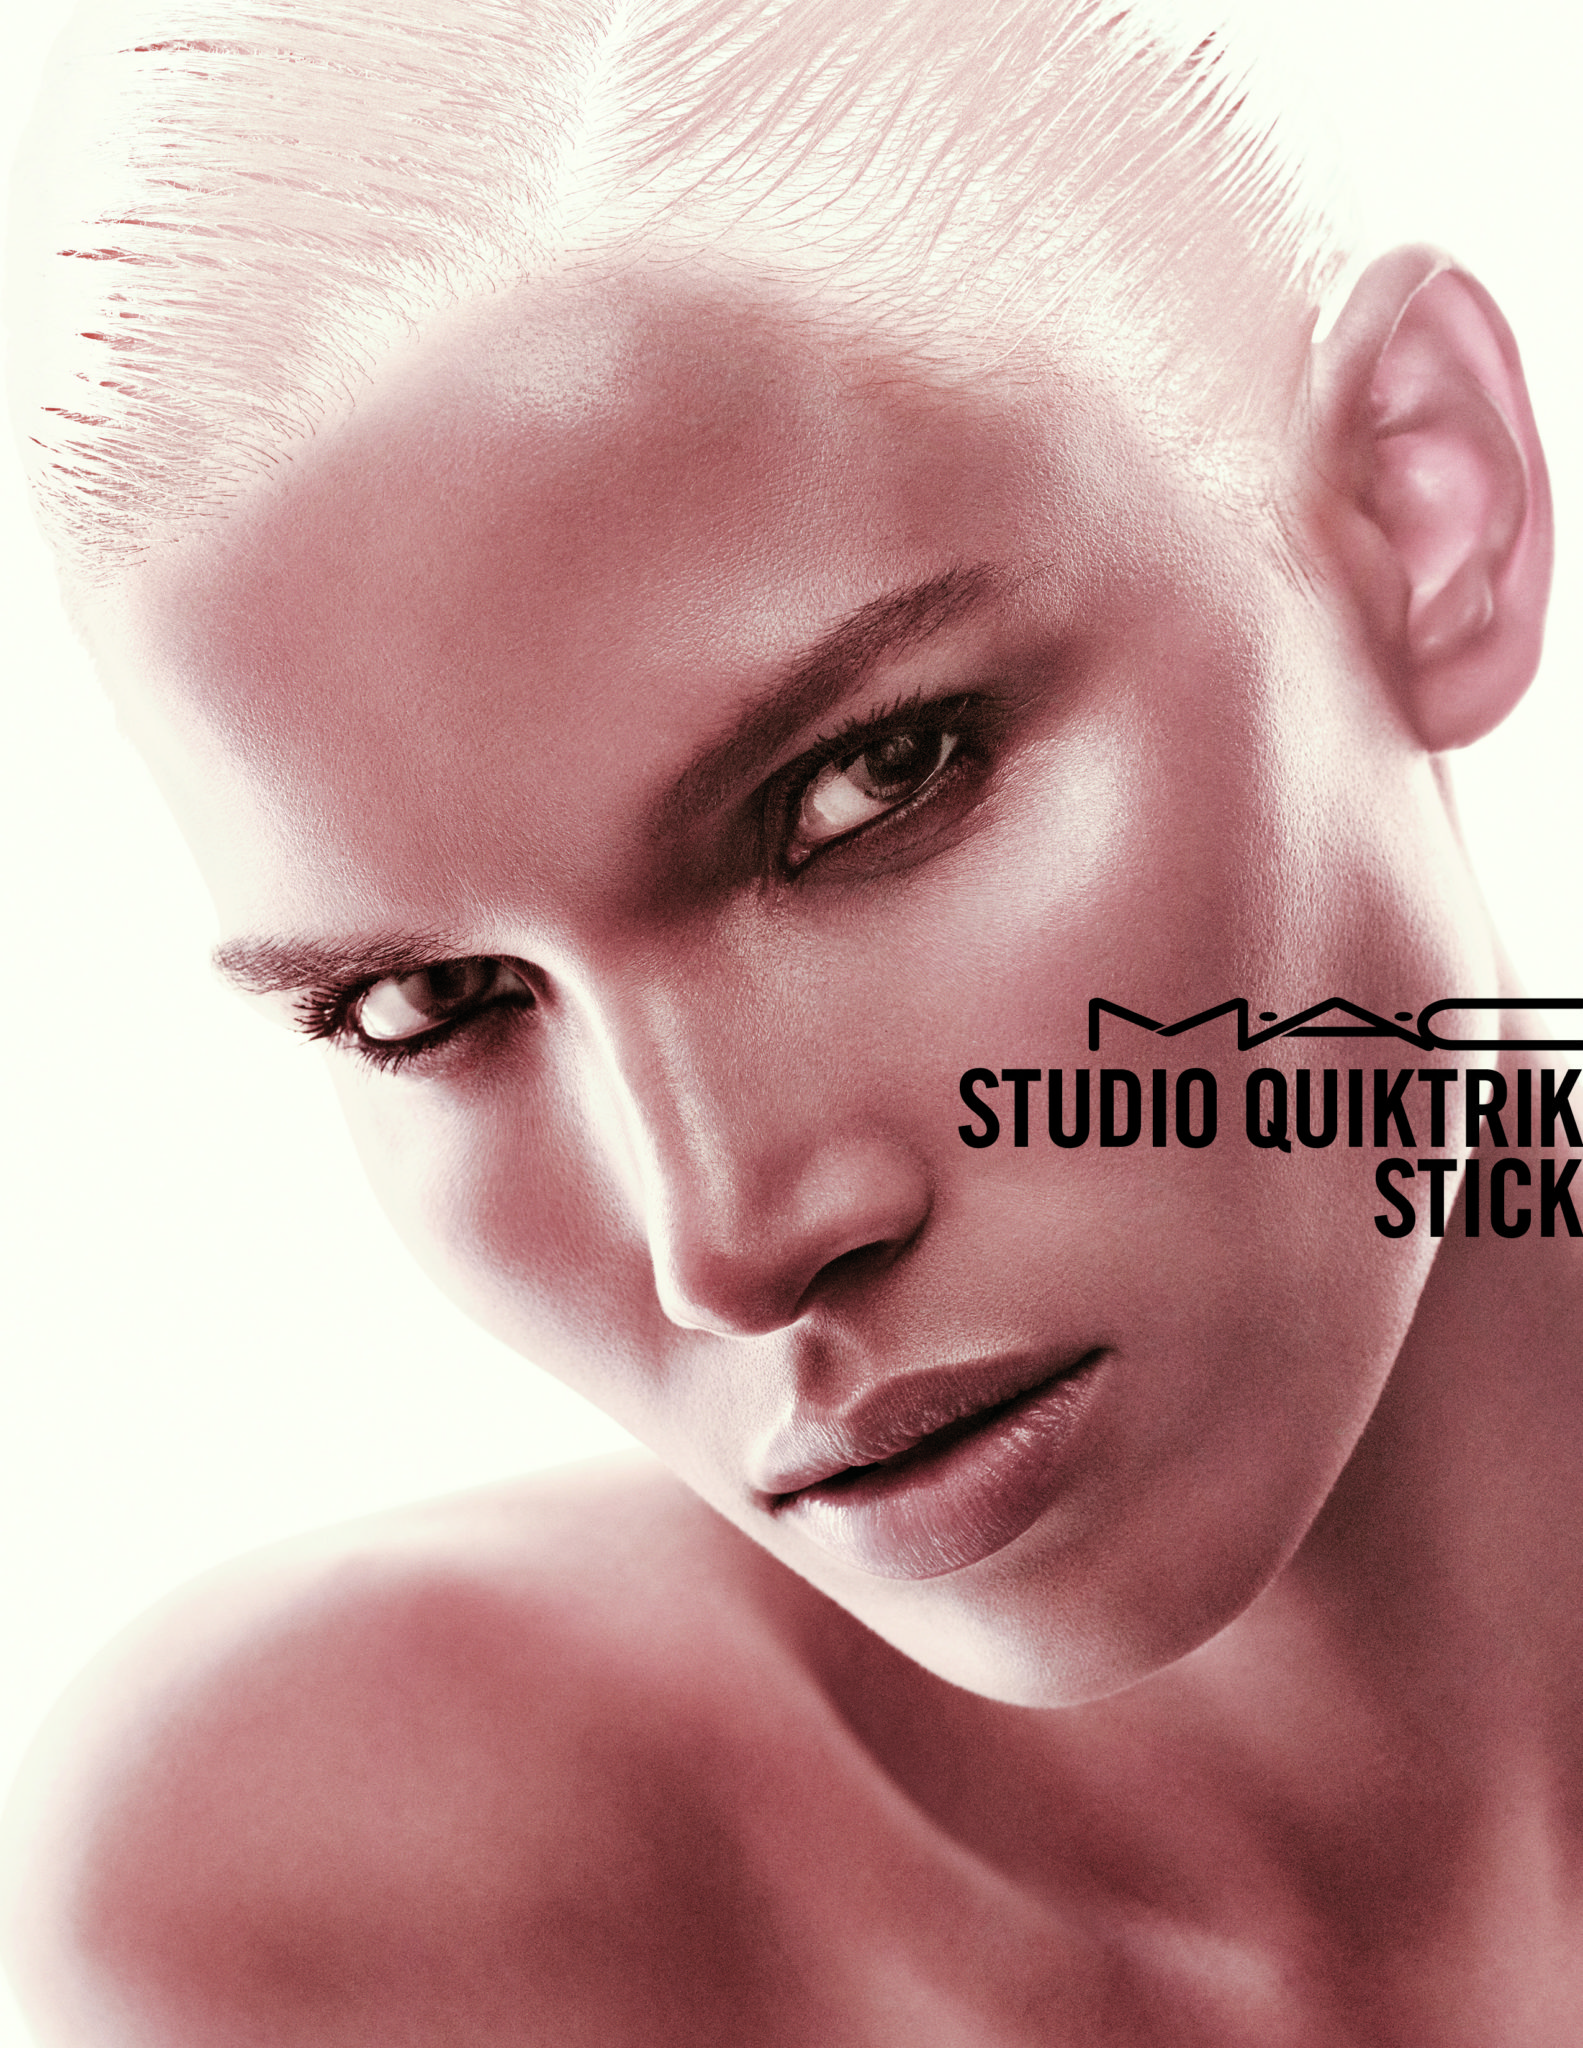 M.A.C. Presents: Studio QuickTrik Stick